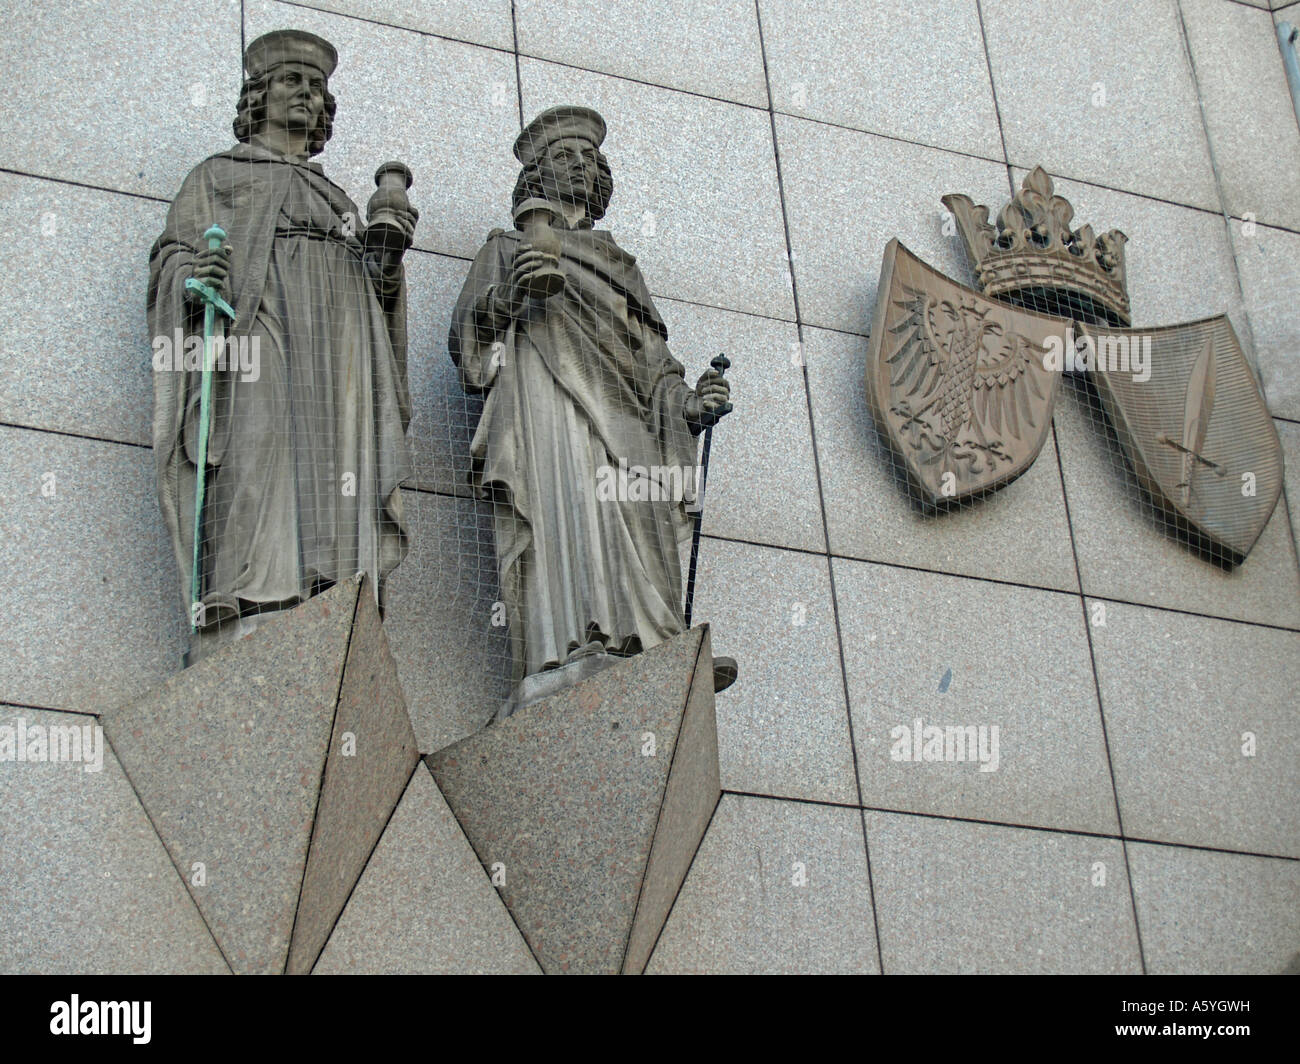 stone figures patrons Cosmas and Damian and city arms on the wall of the town hall in Essen North Rhine Westphalia - Stock Image